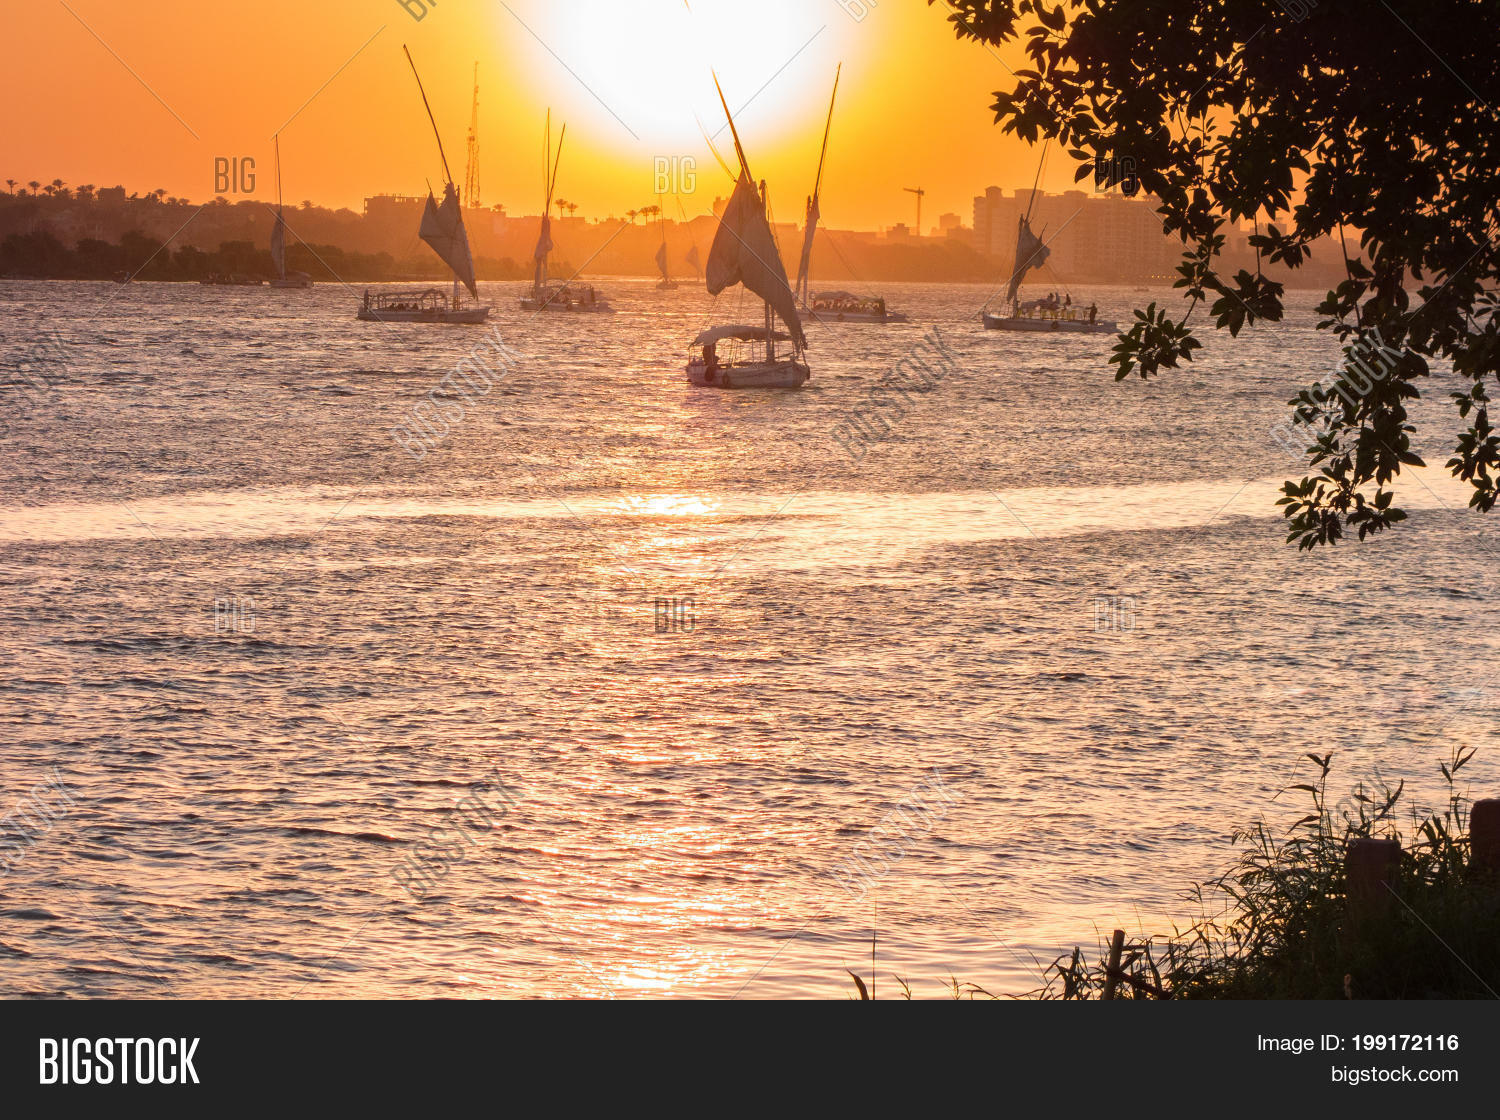 Sunset Over Nile River Image & Photo (Free Trial) | Bigstock